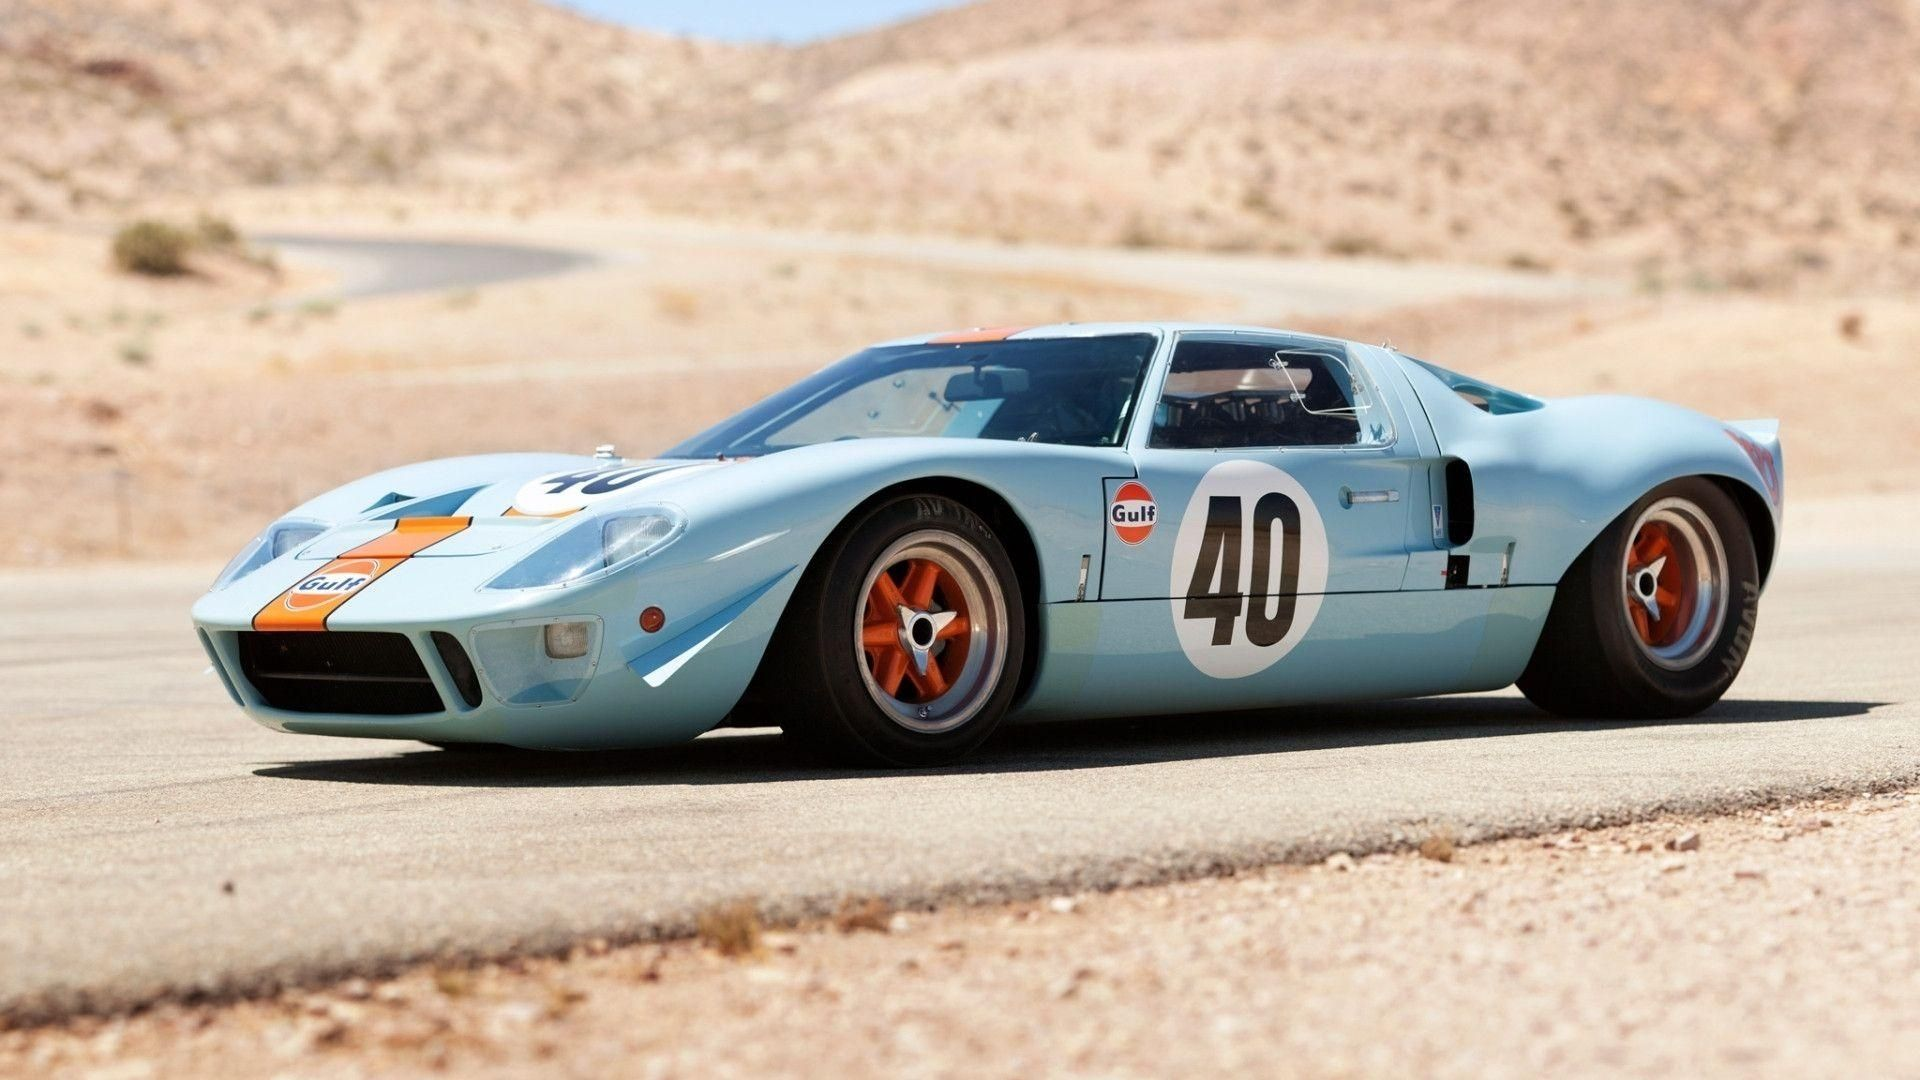 10 New Ford Gt40 Wallpaper Hd Full Hd 1920 1080 For Pc Background Ford Gt40 Classic Racing Cars Celebrity Cars